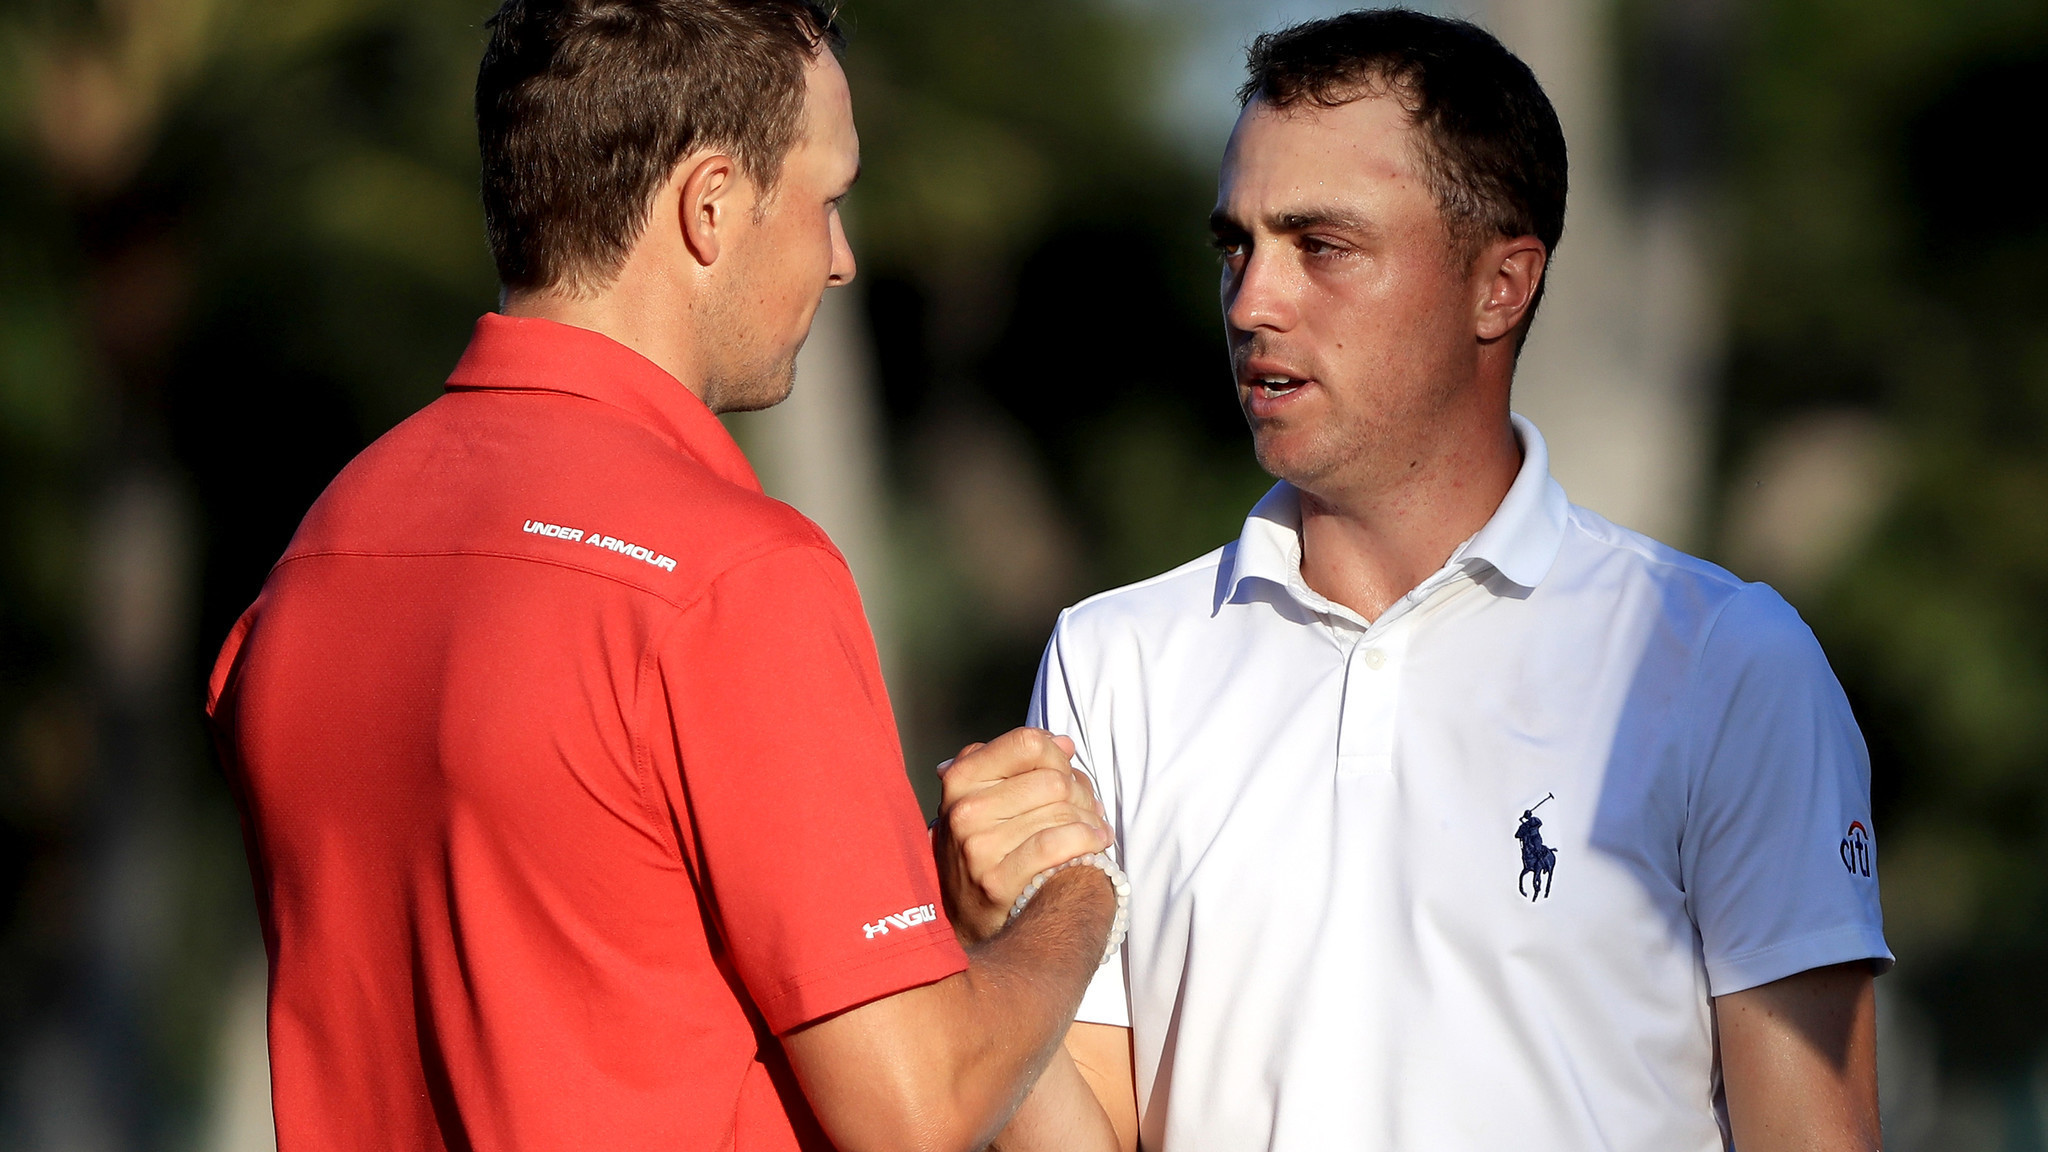 Justin Thomas sets PGA Tour's 36-hole scoring record at Sony Open